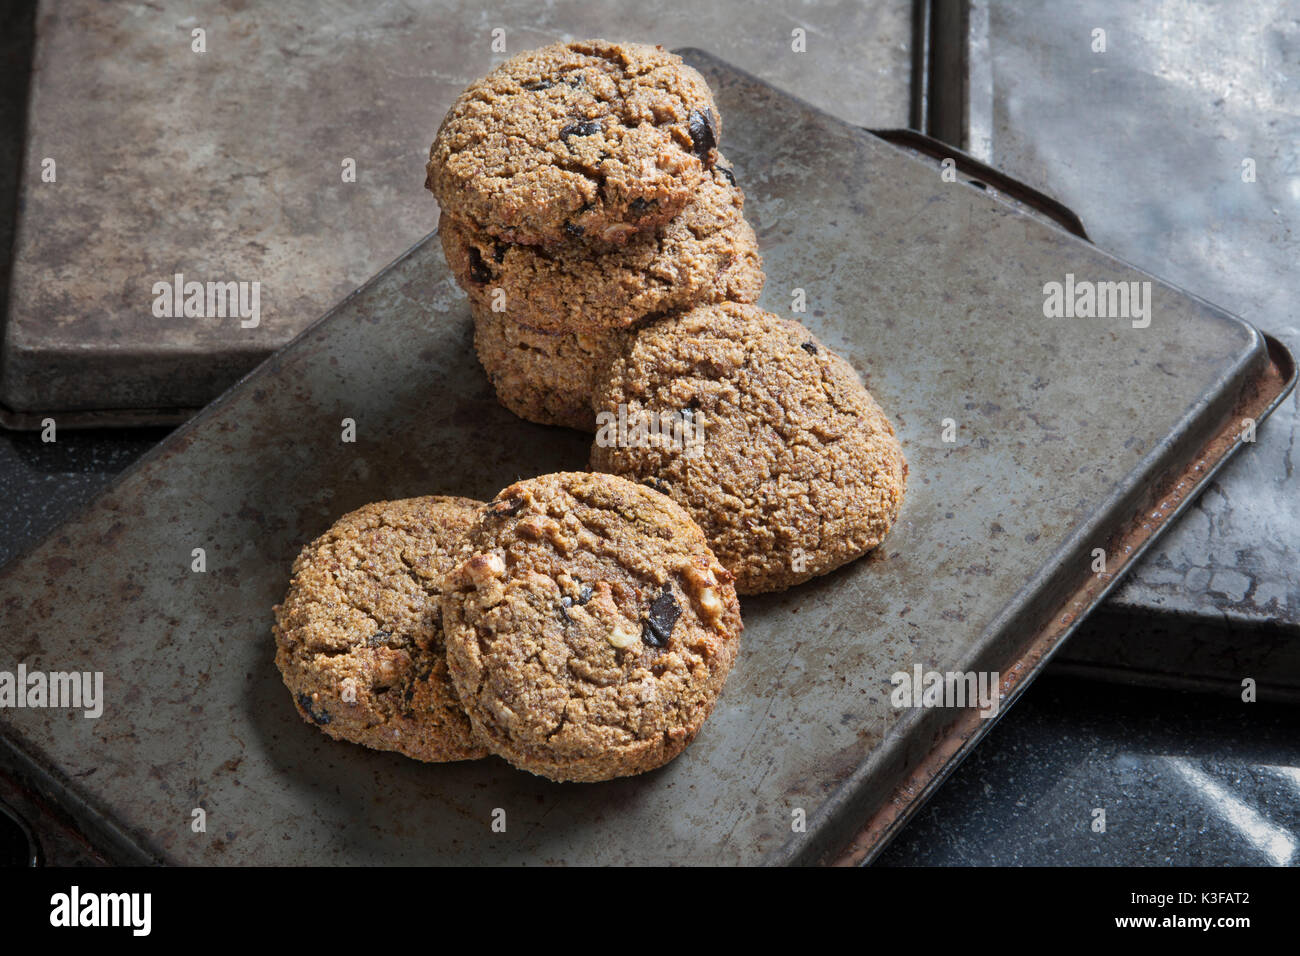 Gluten-Free Pumpkin Spice Cookies aux noix et chocolat noir Photo Stock